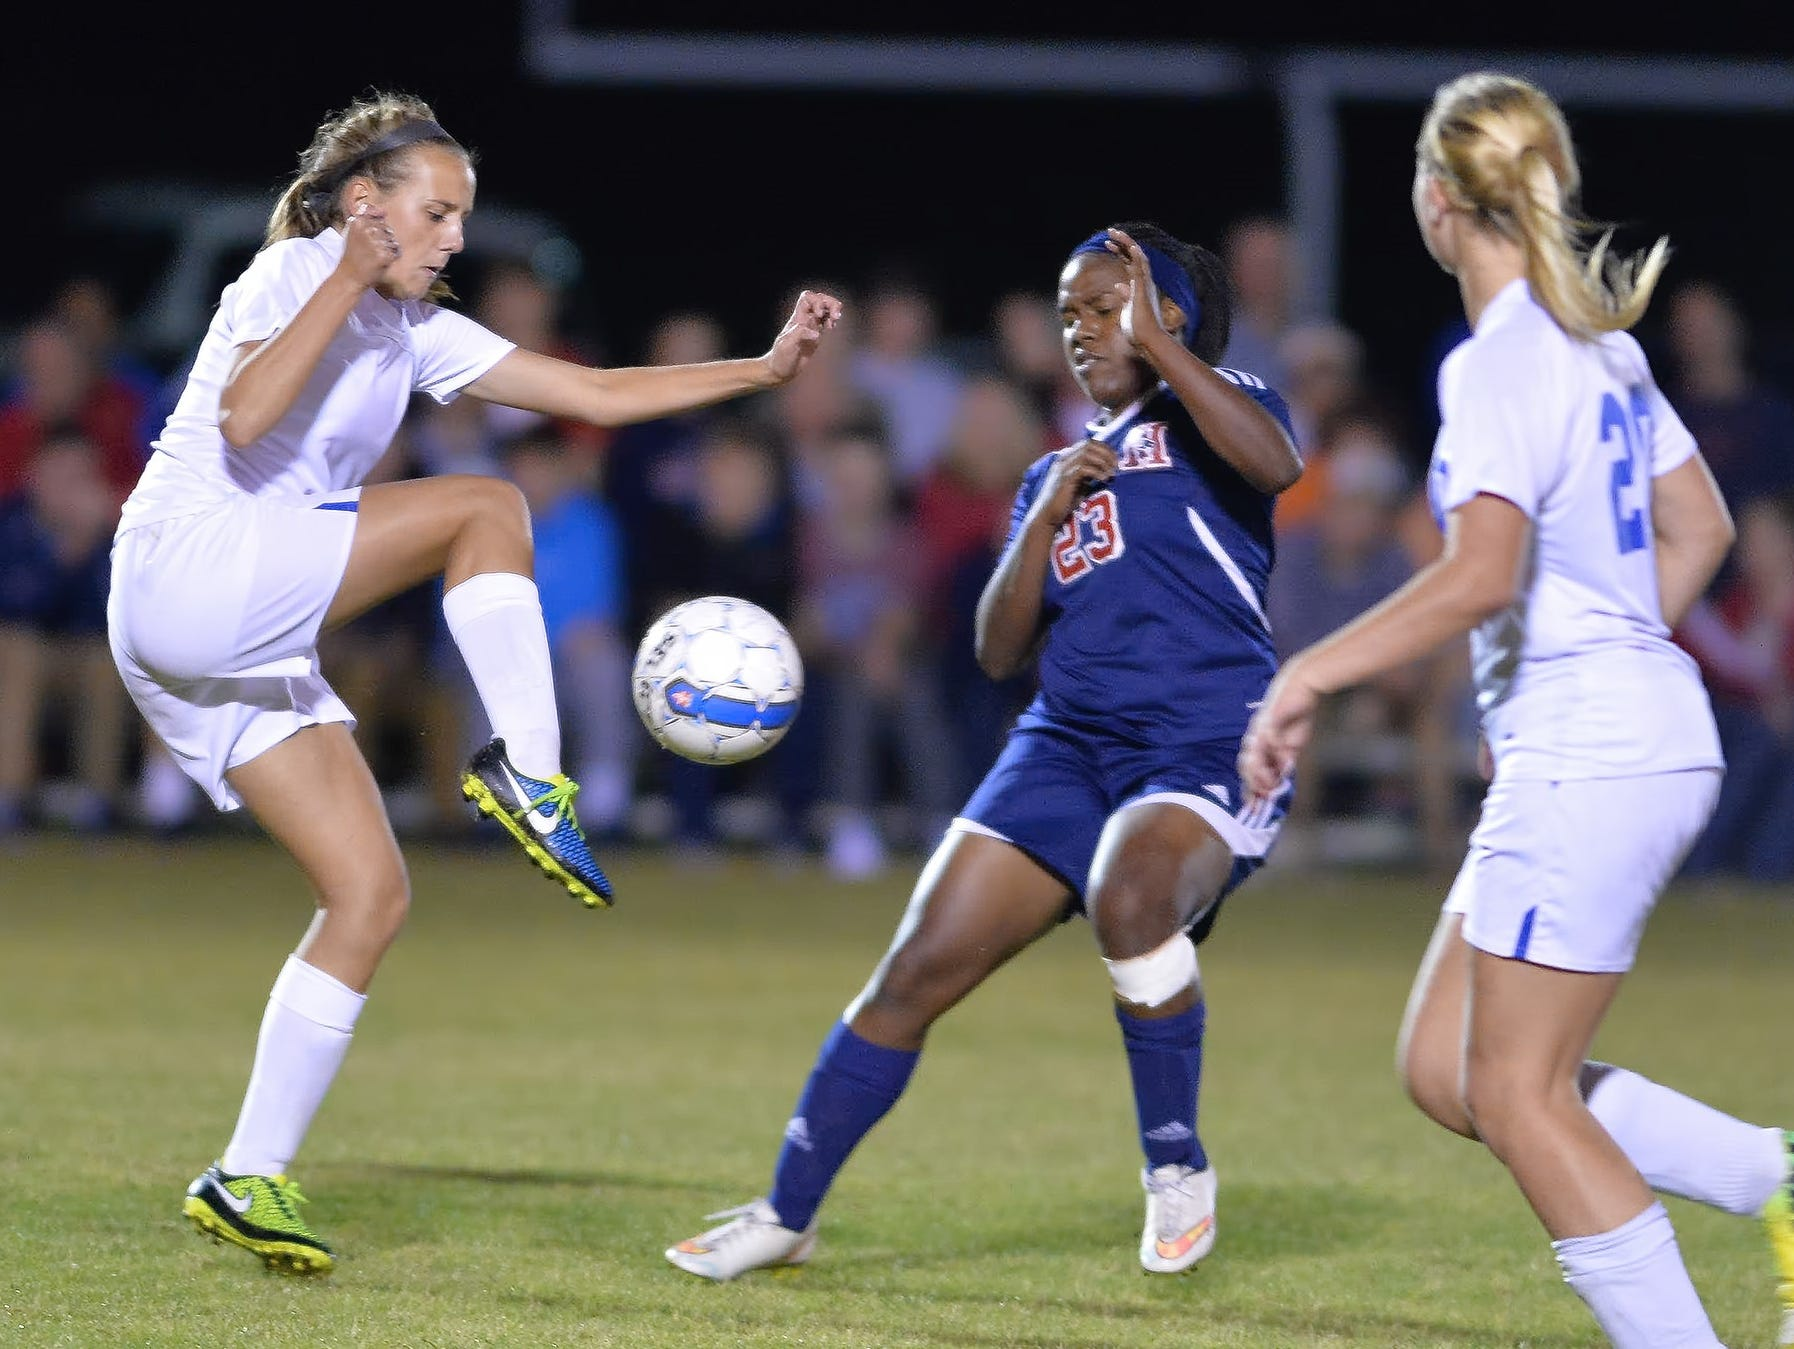 White House High freshman defender Allyson Trimmer plays a ball out of the air in front of White House Heritage senior Faith Williamson.